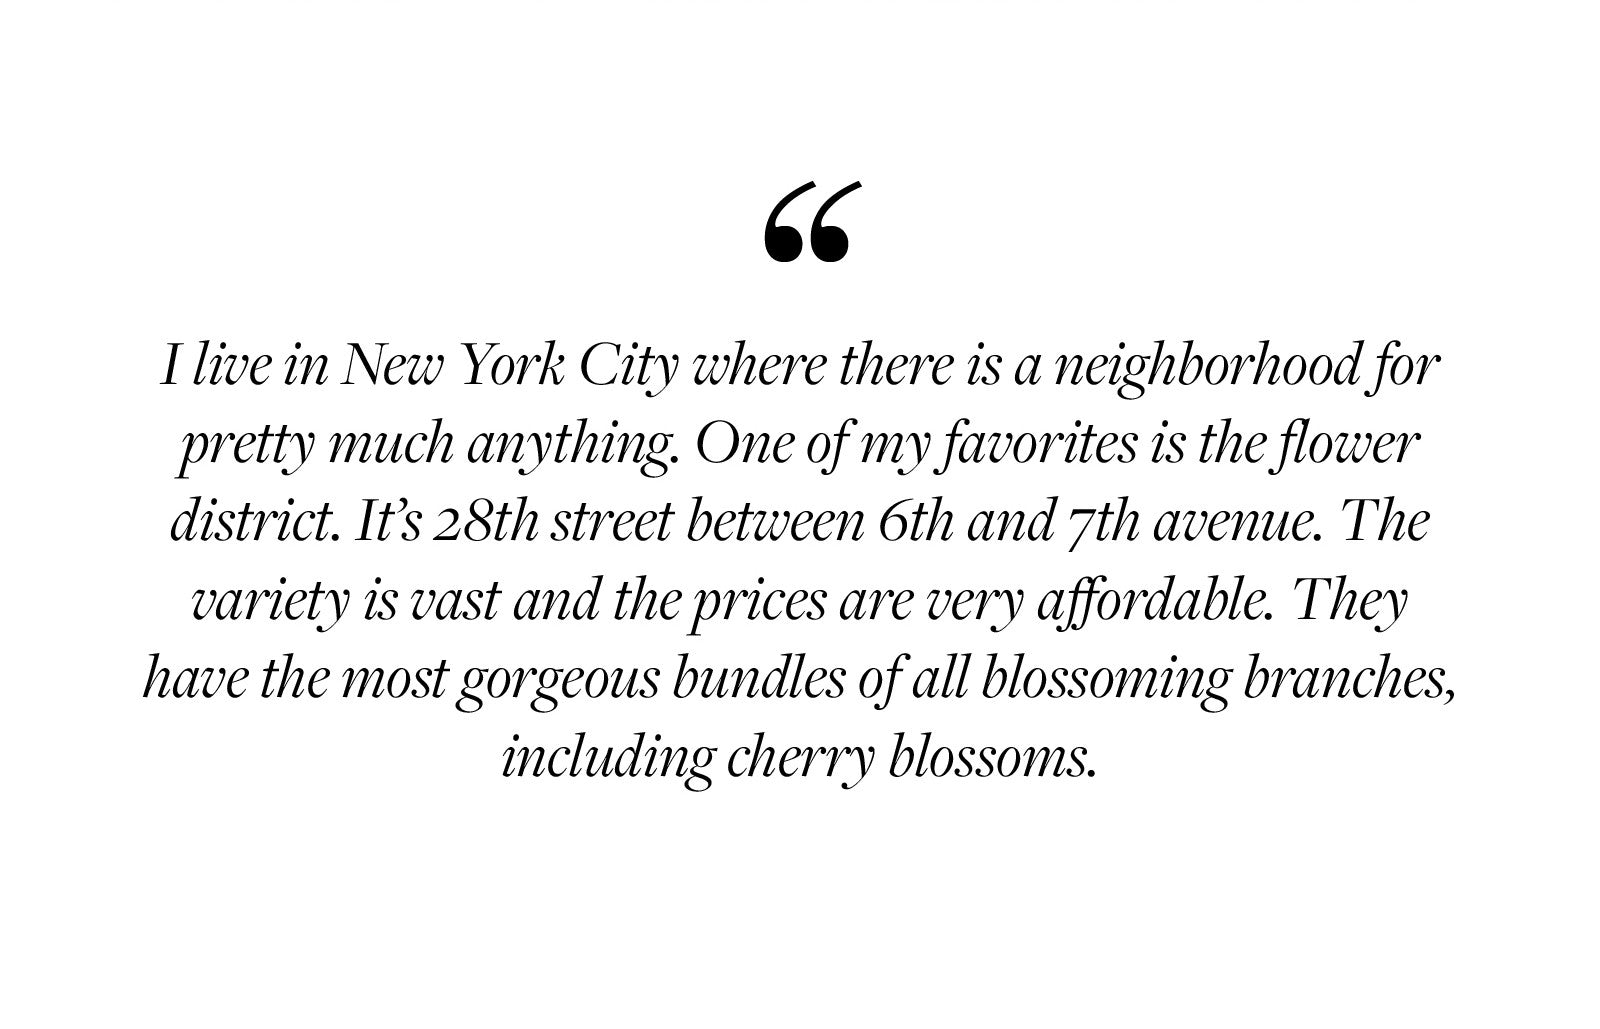 I live in New York City where there is a neighborhood for pretty much anything. One of my favorites is the flower district. It's 28th street between 6th and 7th avenue. The variety is vast and the prices are very affordable. They have the most gorgeous bundles of all blossoming branches, including cherry blossoms.